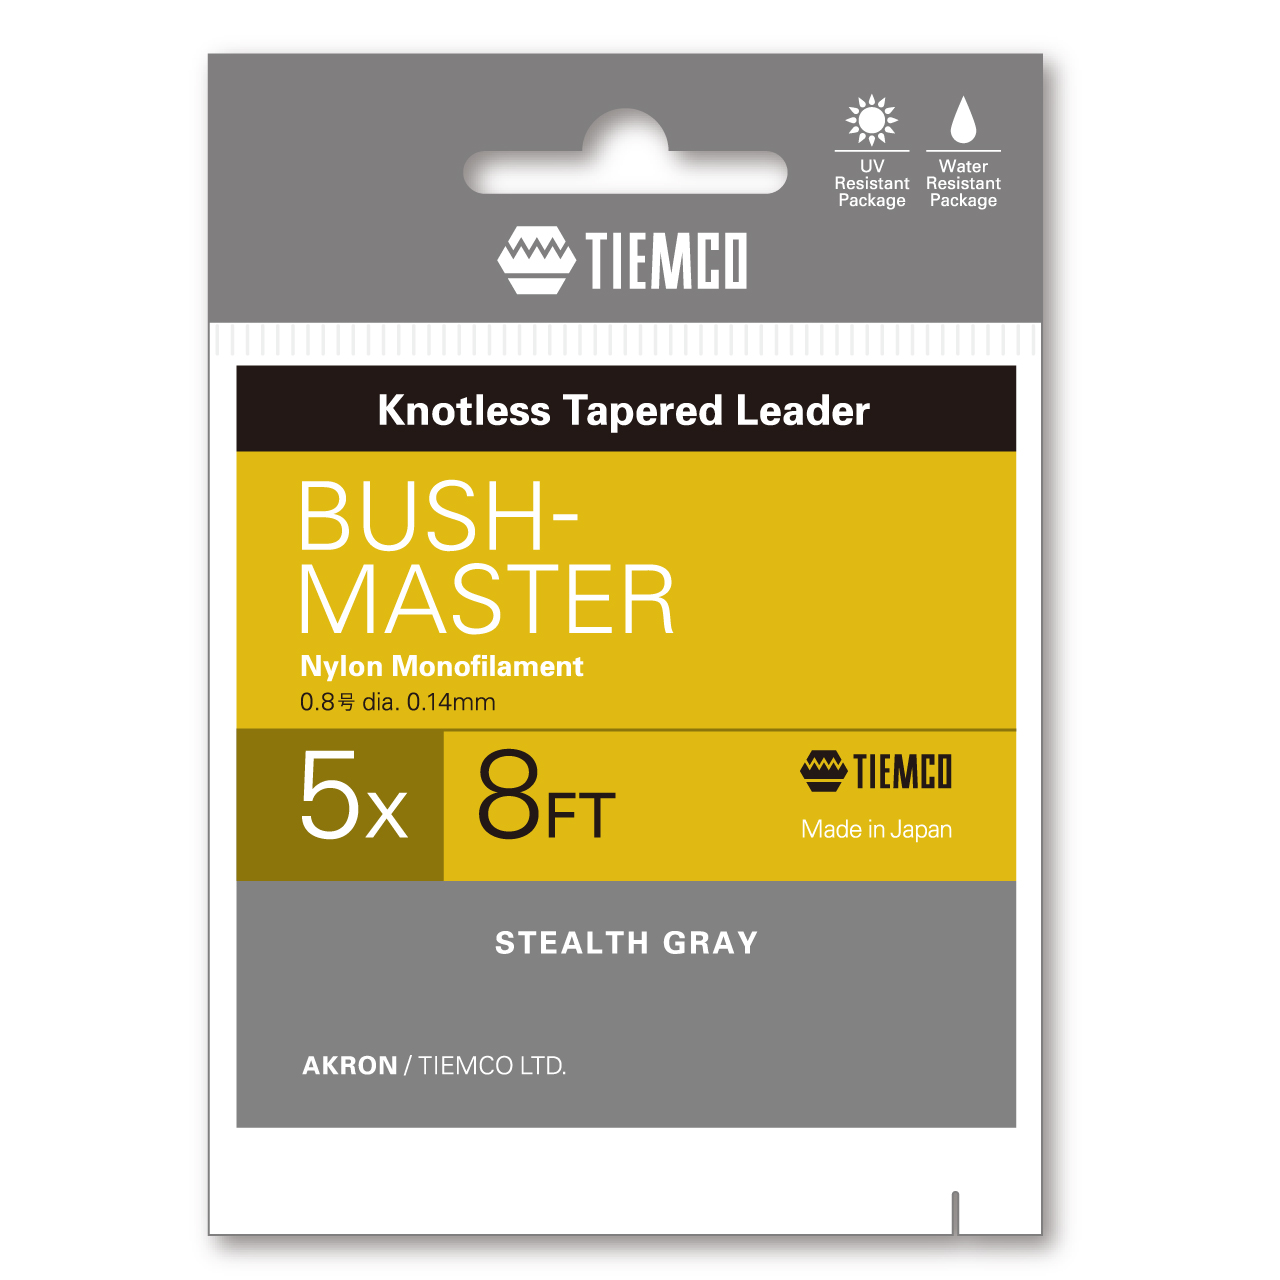 TIEMCO Bush-Master Leader